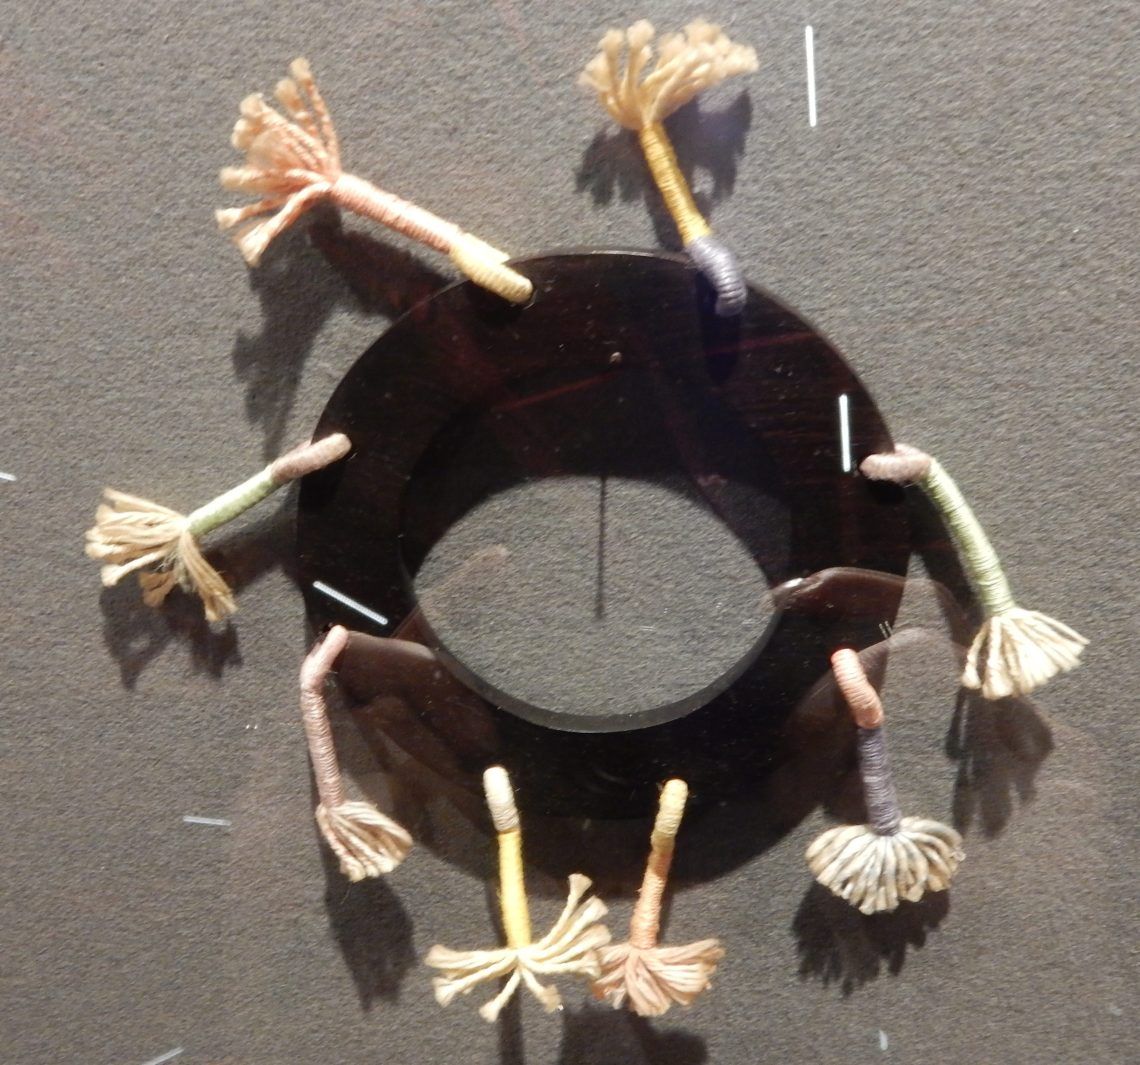 Julia Manheim, armband, 1976. Collectie Jerven Ober, SAF 2018. Foto Esther Doornbusch, november 2018, CC BY 4.0